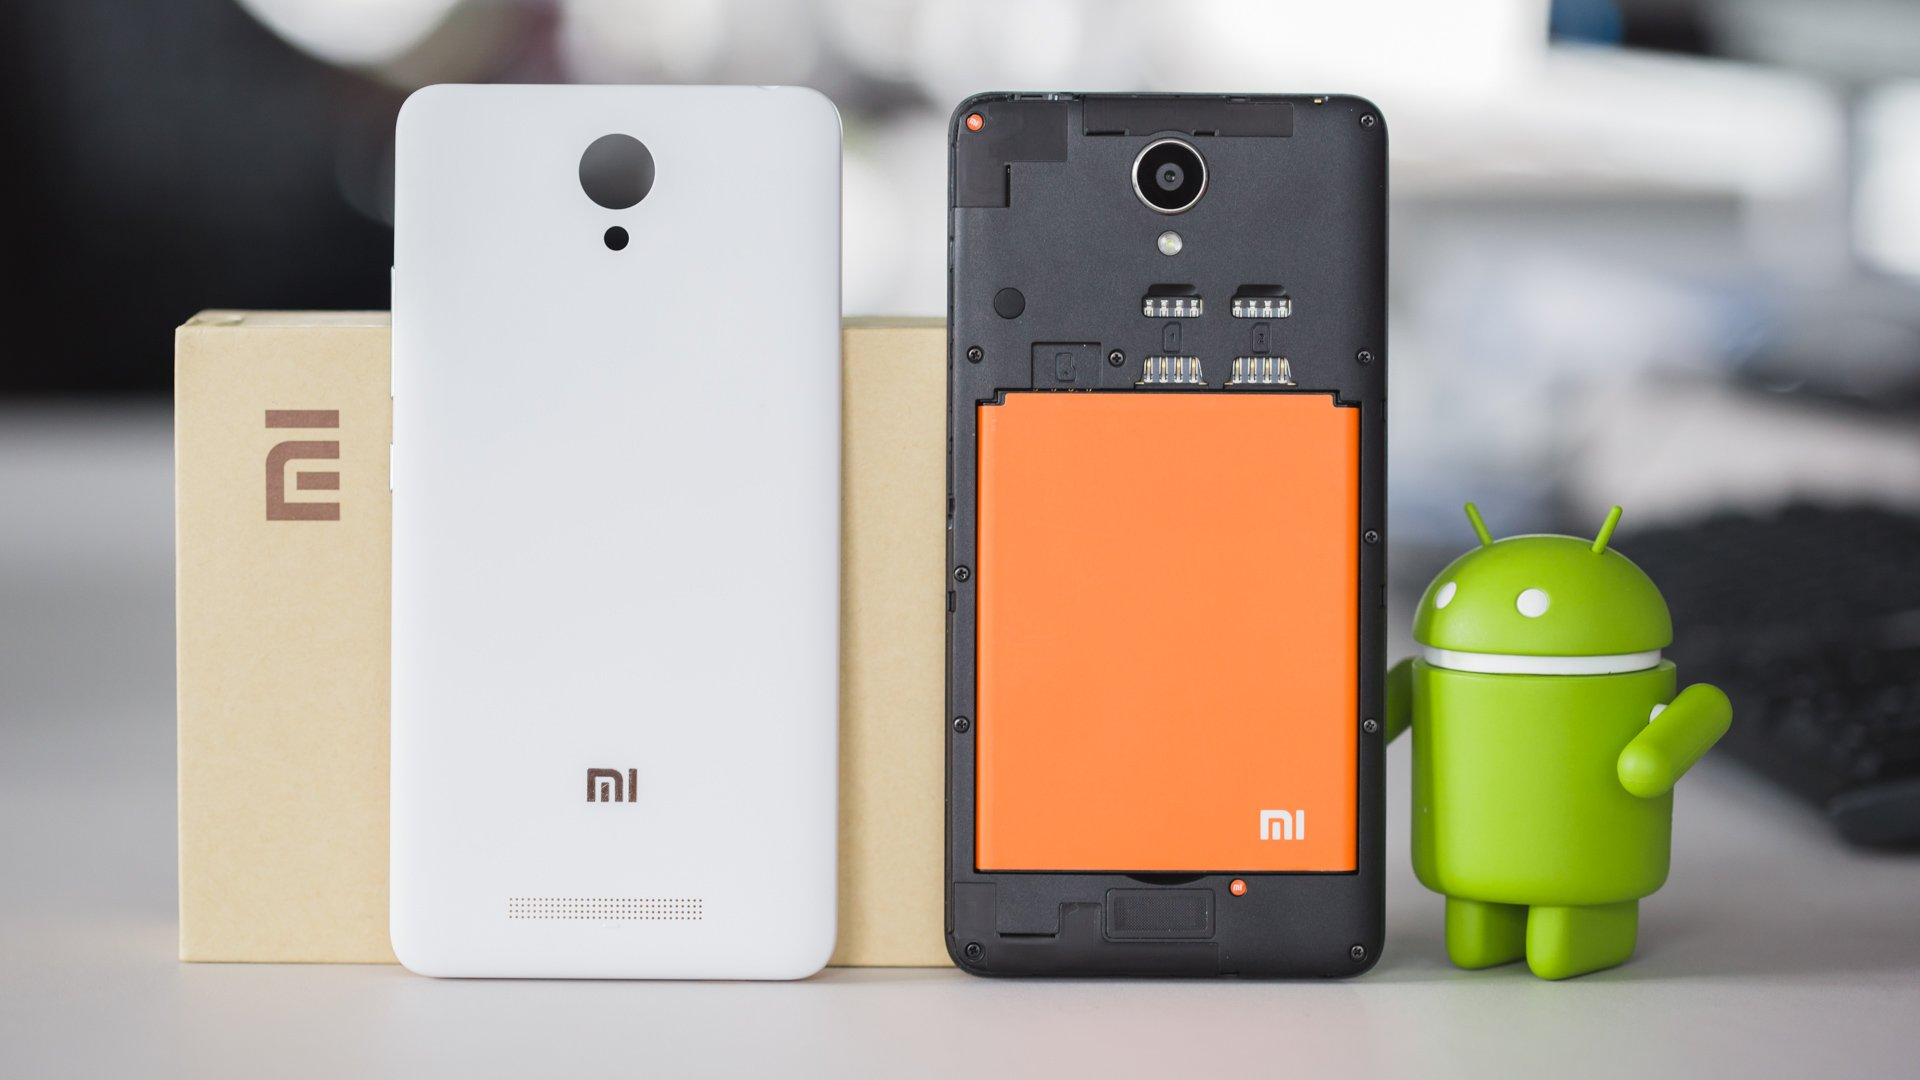 redmi note 2 user manual